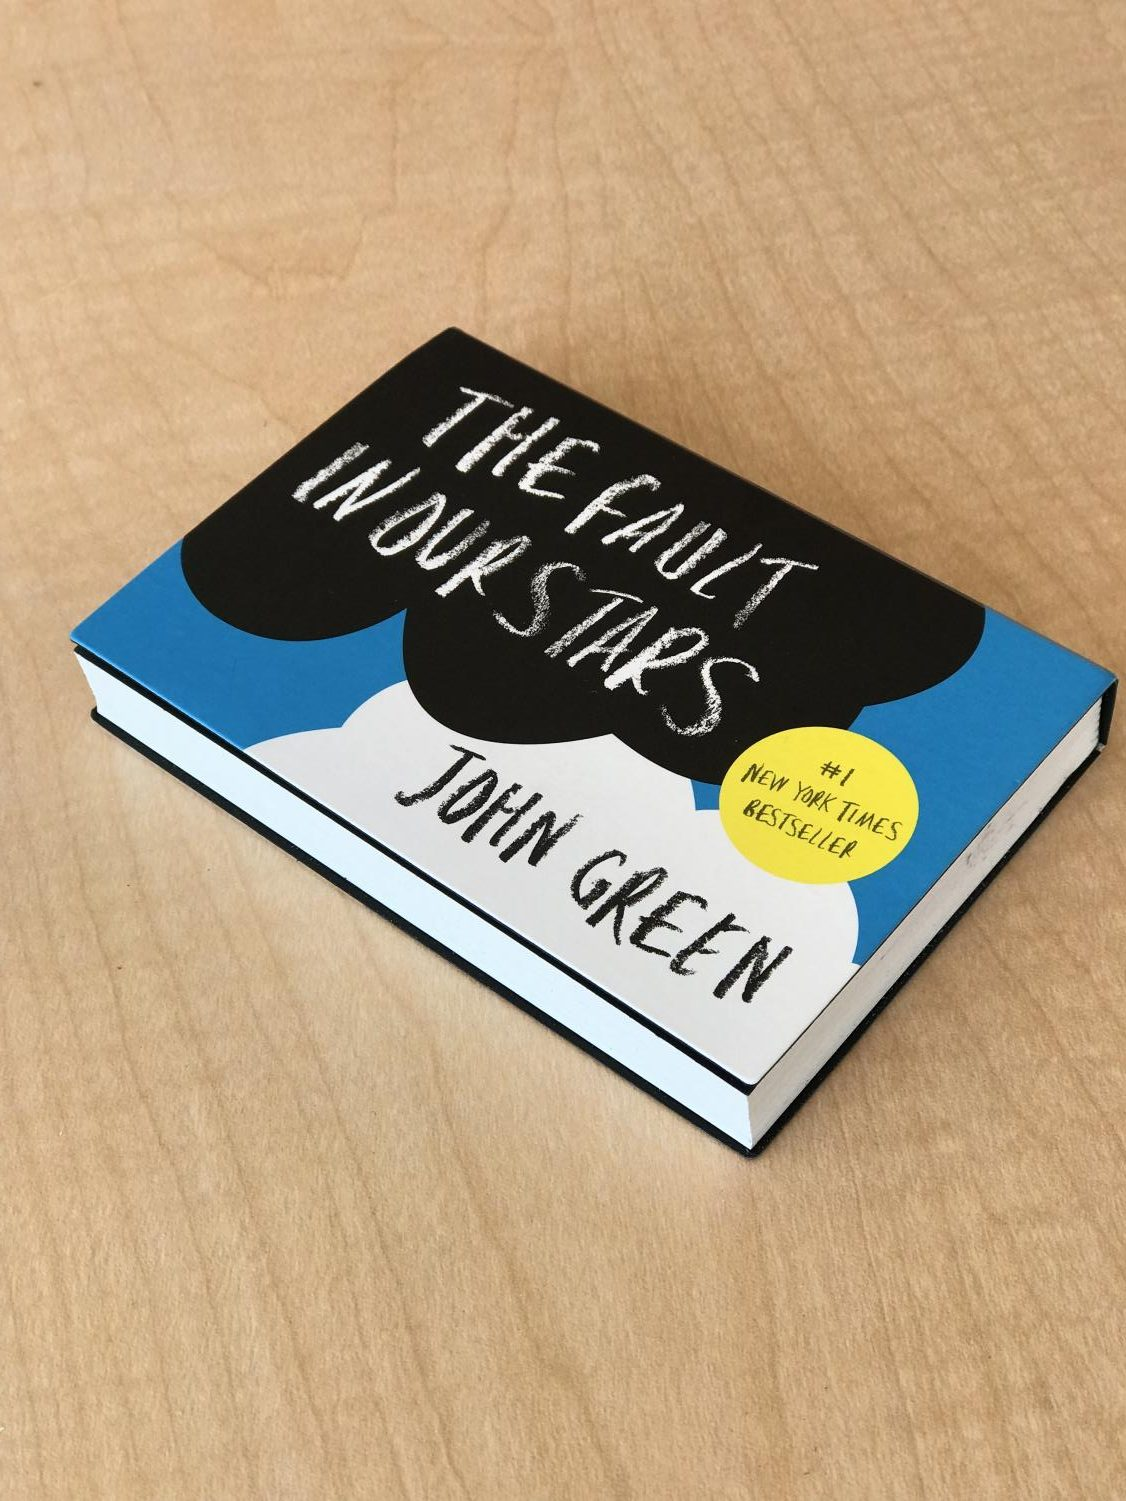 John Green's popular YA novel, The Fault in Our Stars, printed completely in mini format.